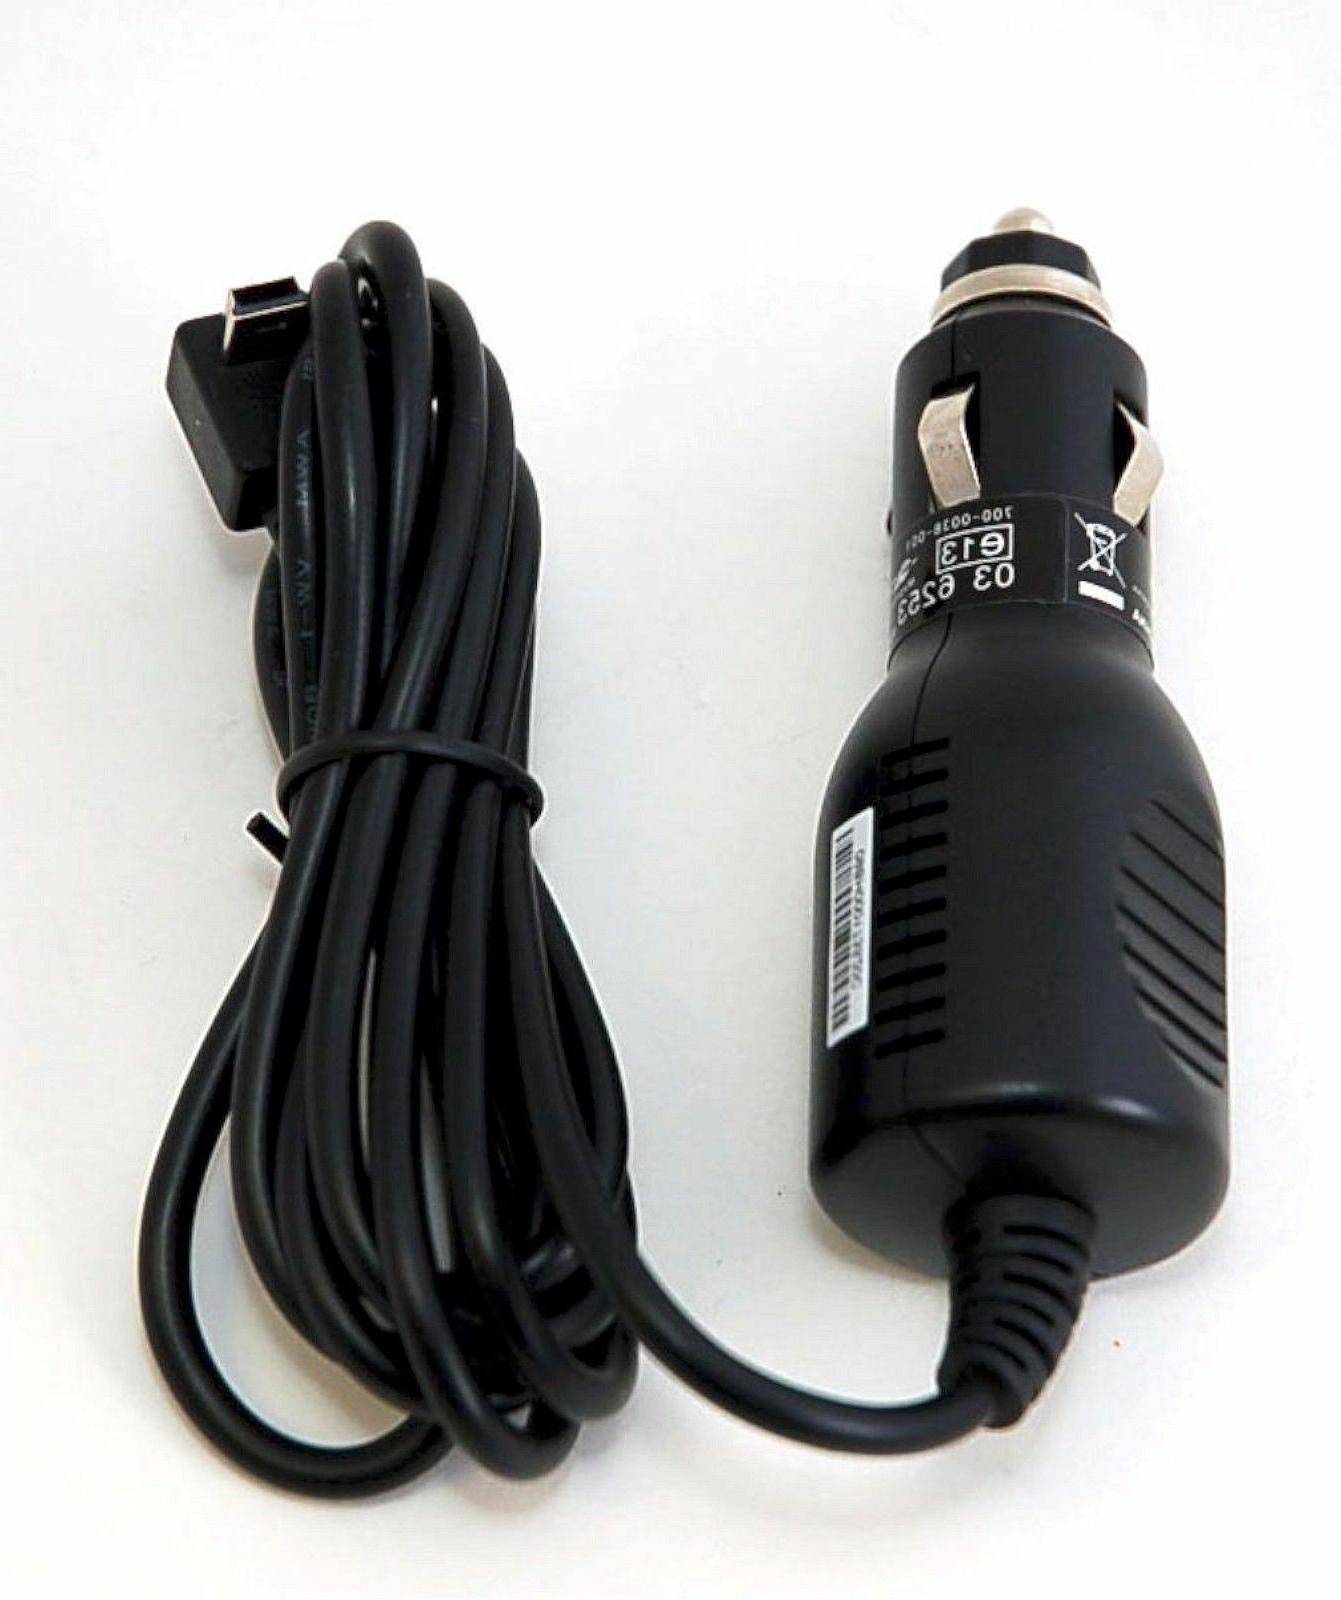 GENUINE Magellan GPS Mini-USB Car Charger Roadmate 2036 5045